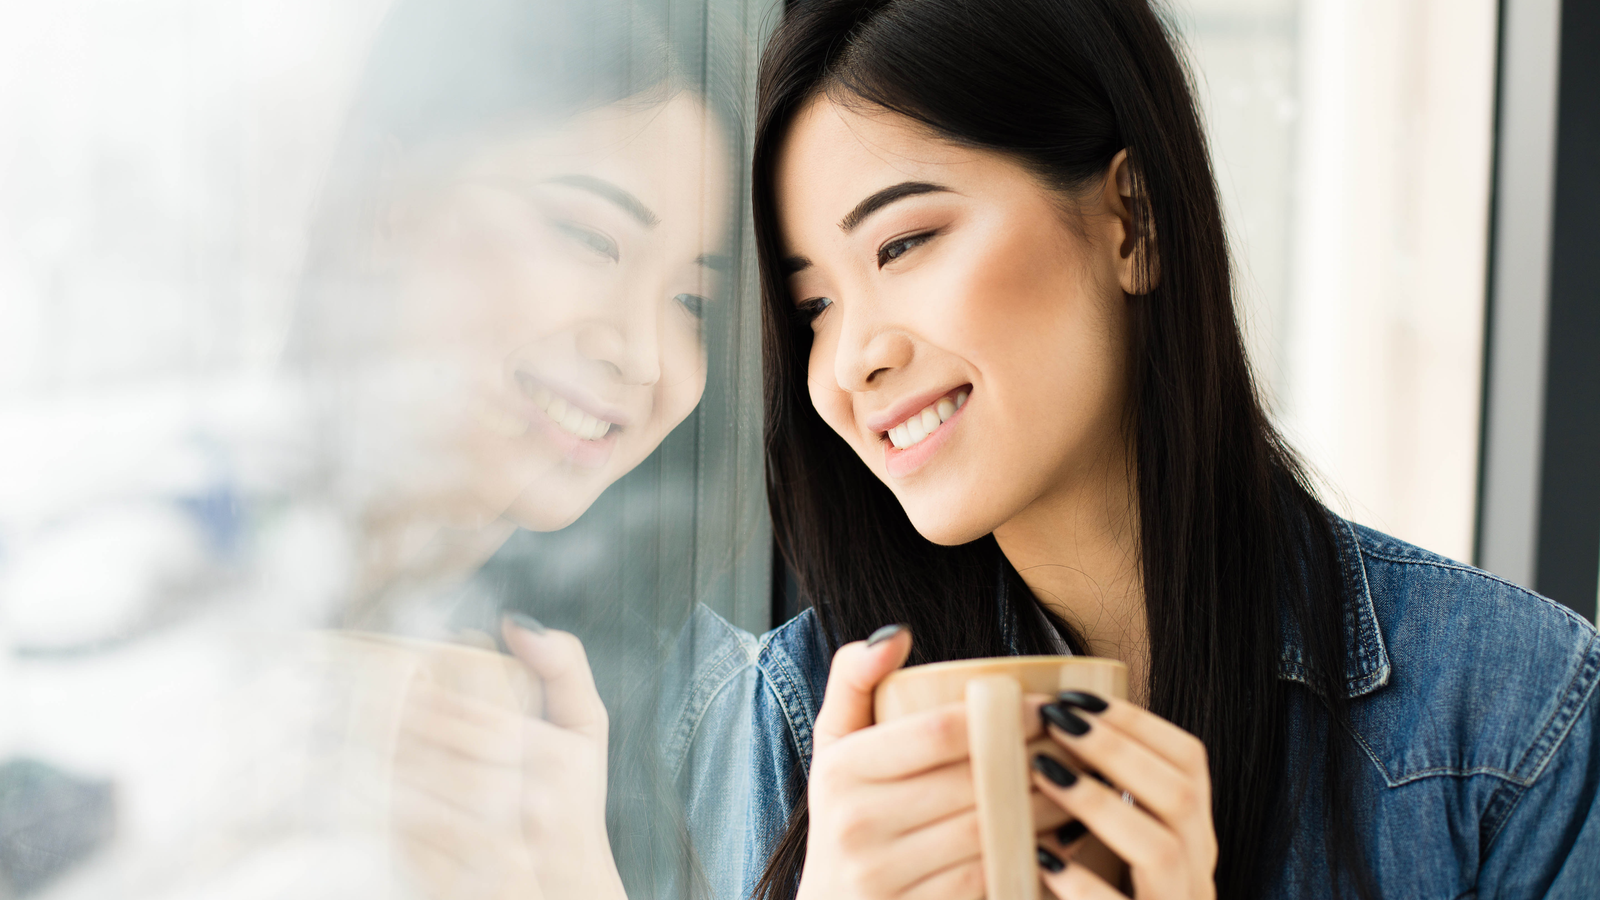 Person looking out window while holding coffee mug and smiling